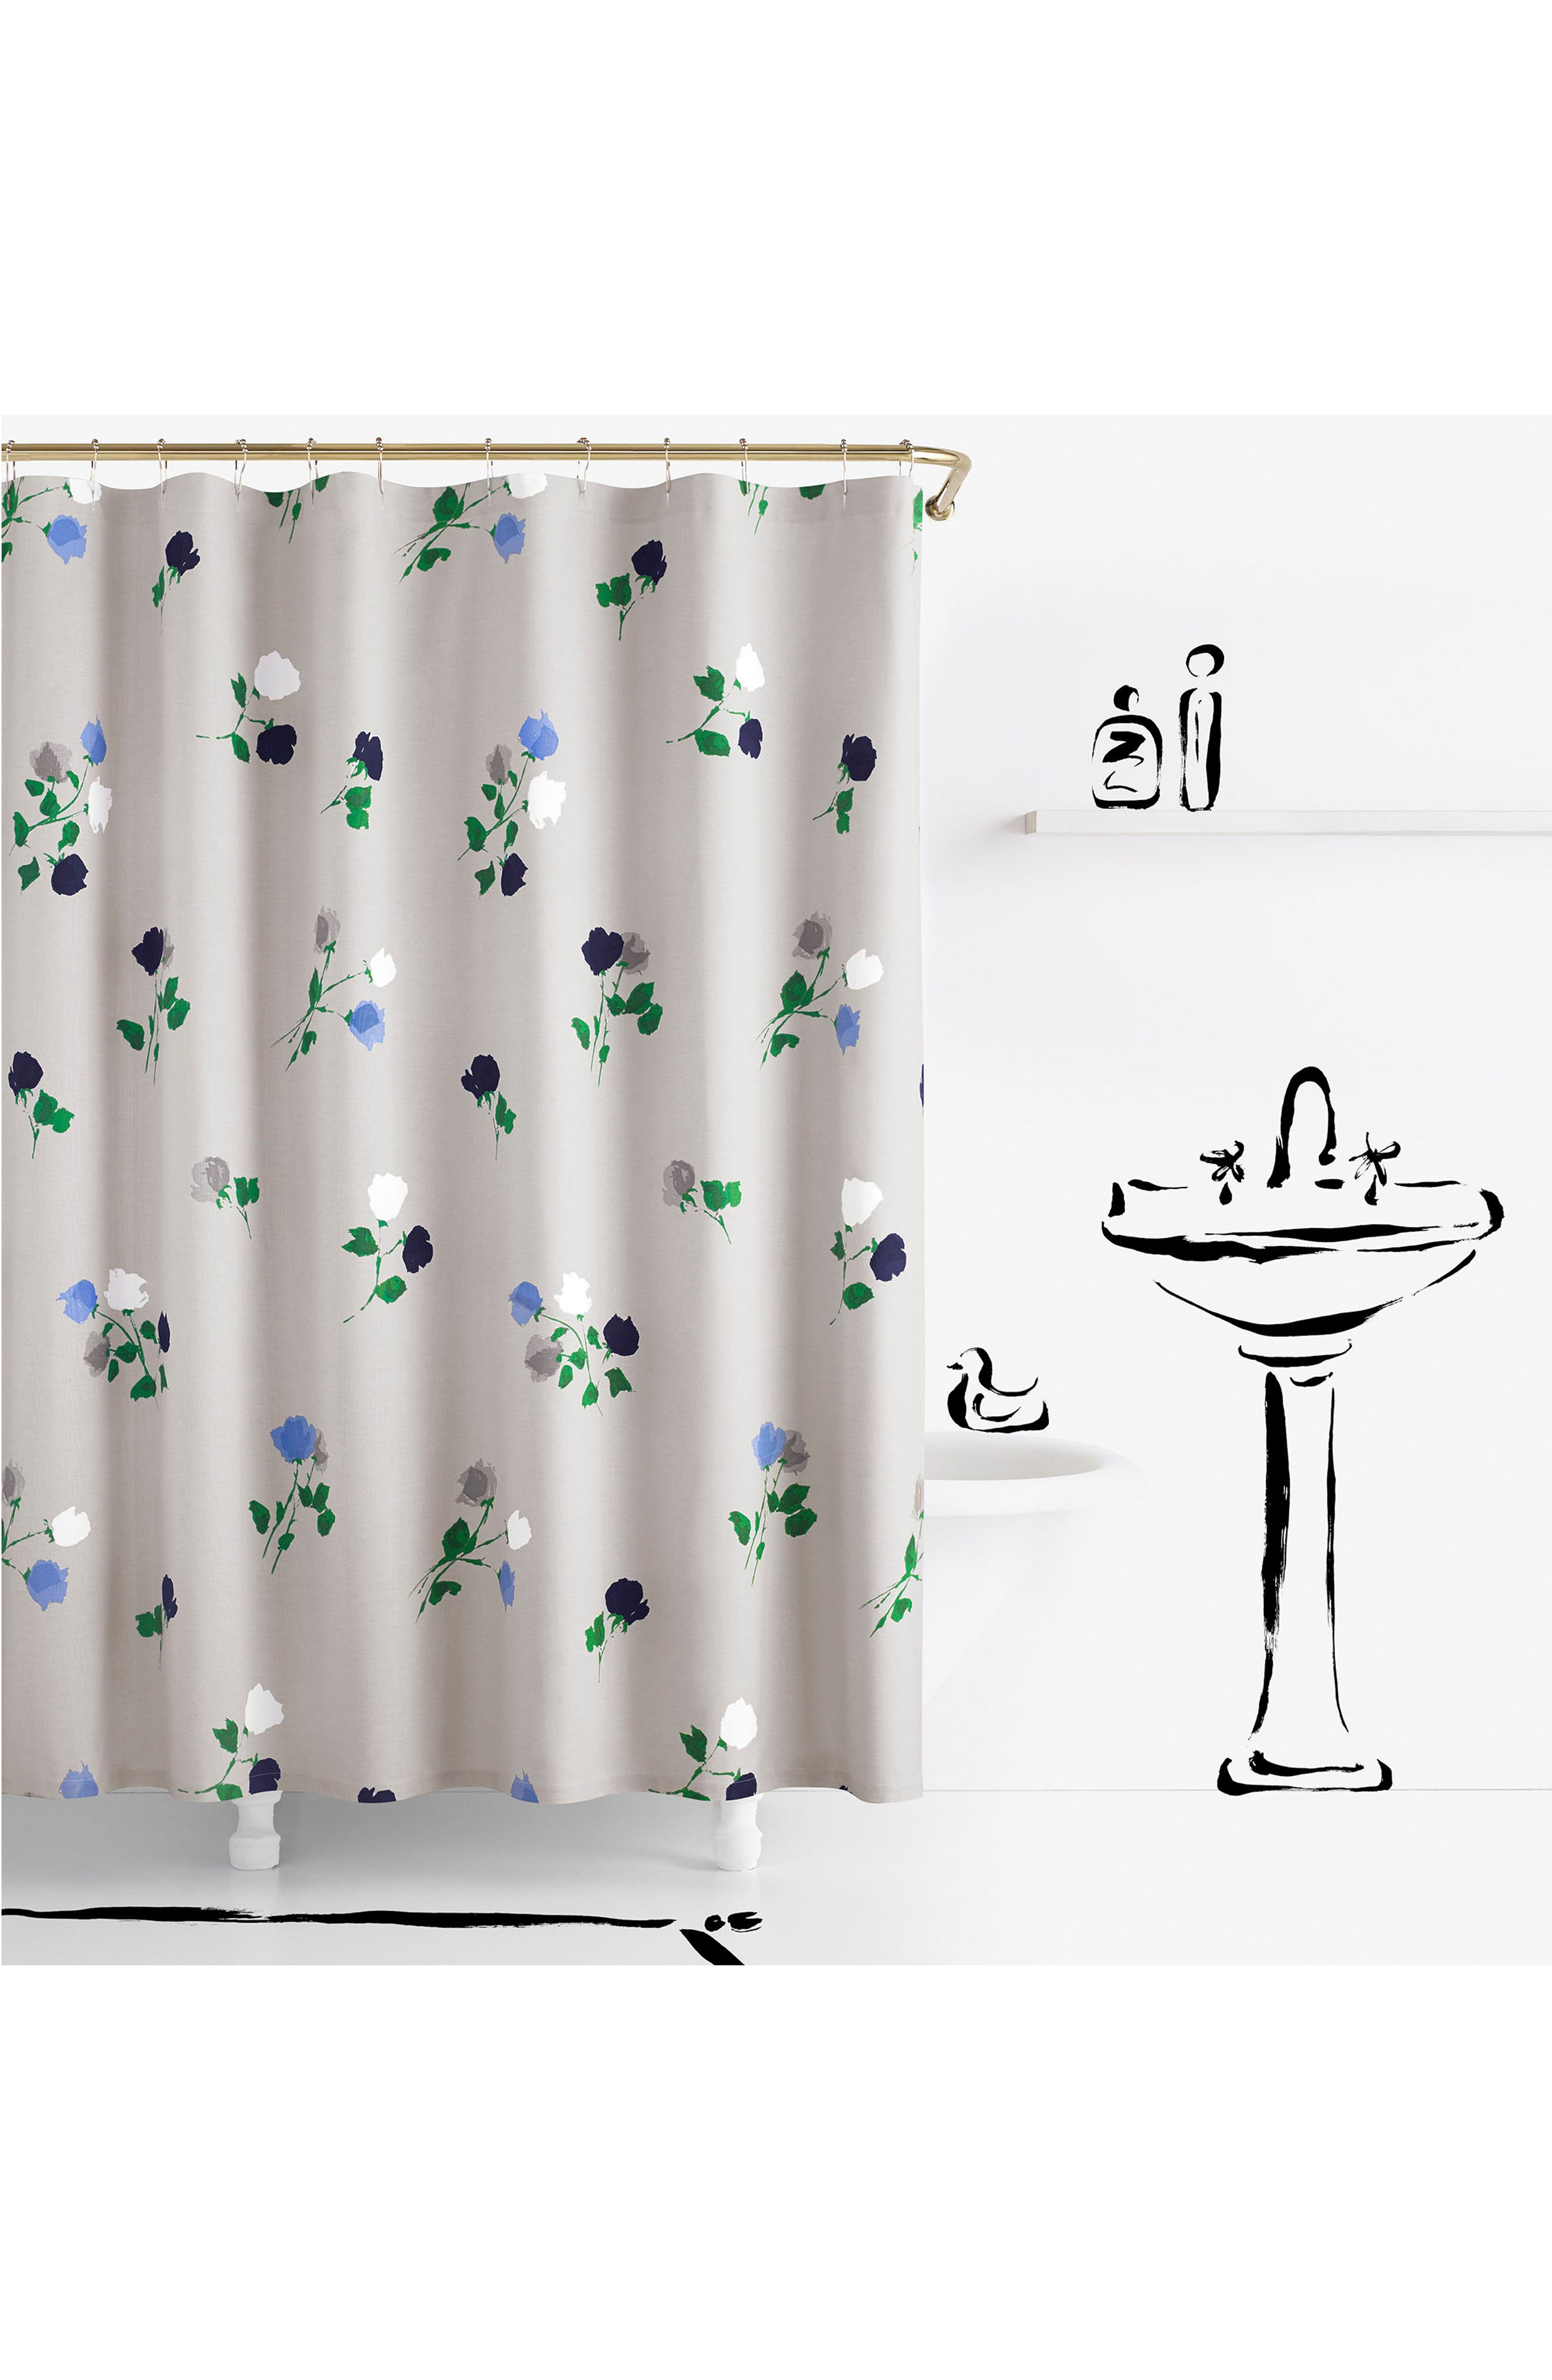 Main Image - kate spade new york willow court shower curtain